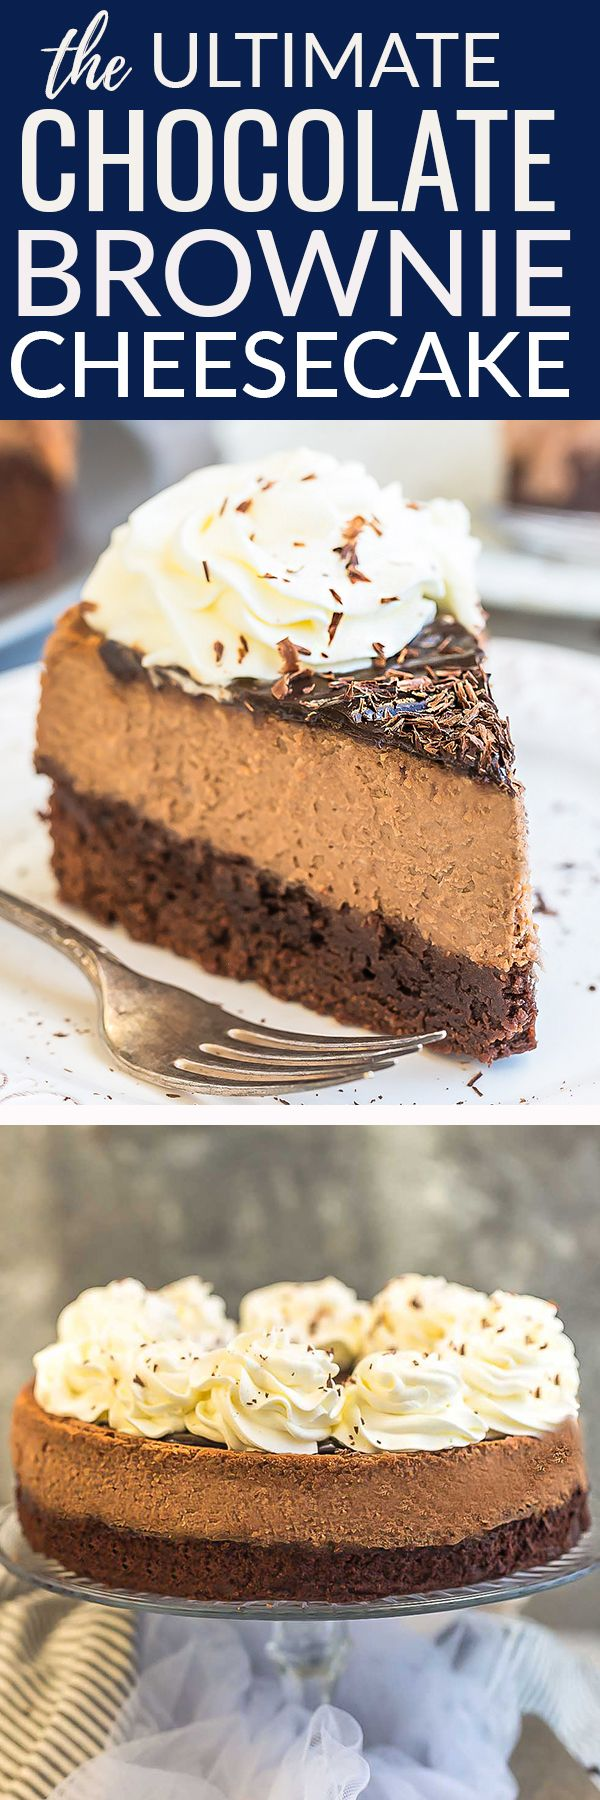 The ULTIMATE Chocolate Brownie Cheesecake that is perfect for chocolate lovers. Made with the BEST fudgy brownie bottom and a rich, decadent chocolate cheesecake center, topped with sweet chocolate ganache and whipped cream. A showstopping dessert for Christmas, Easter, Thanksgiving, birthday parties or any holiday gatherings. #cheesecake #chocolate #chocolatecheesecake #ganache #creamy #brownie #whippedcream